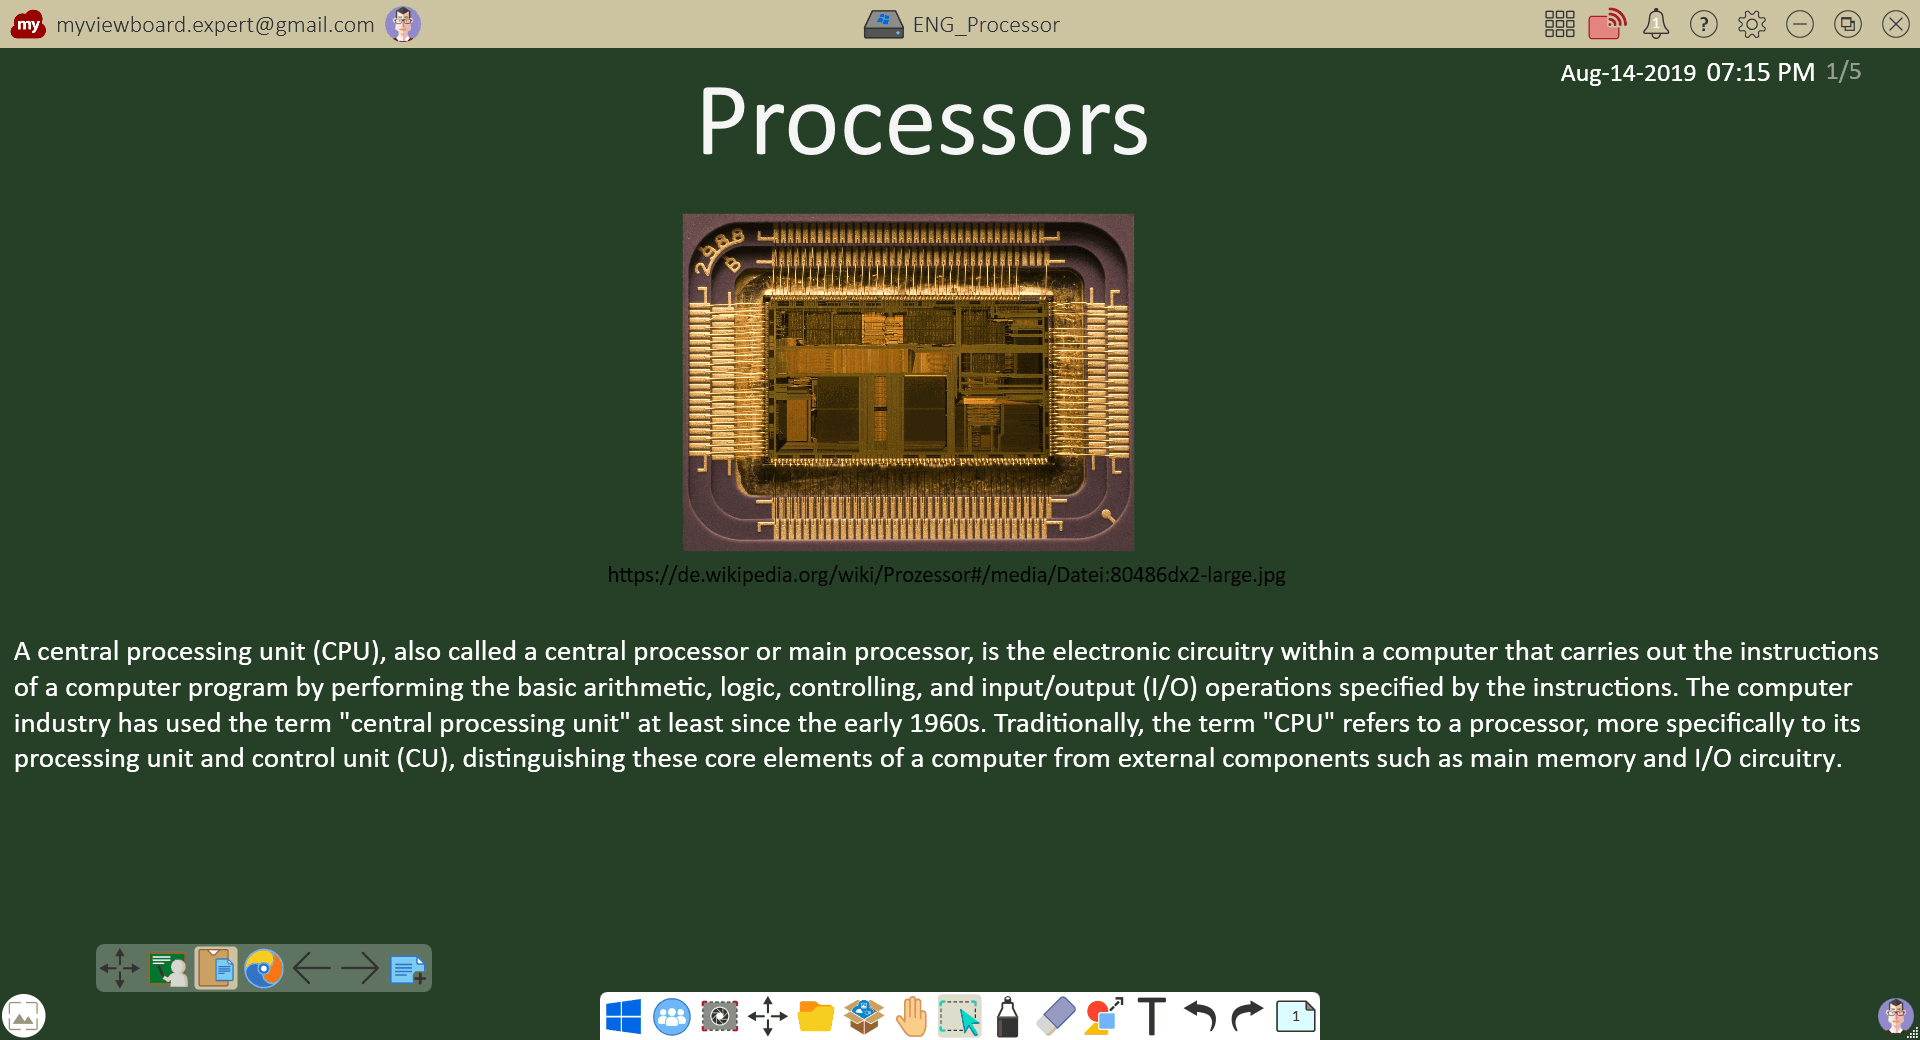 ENG Processor.png